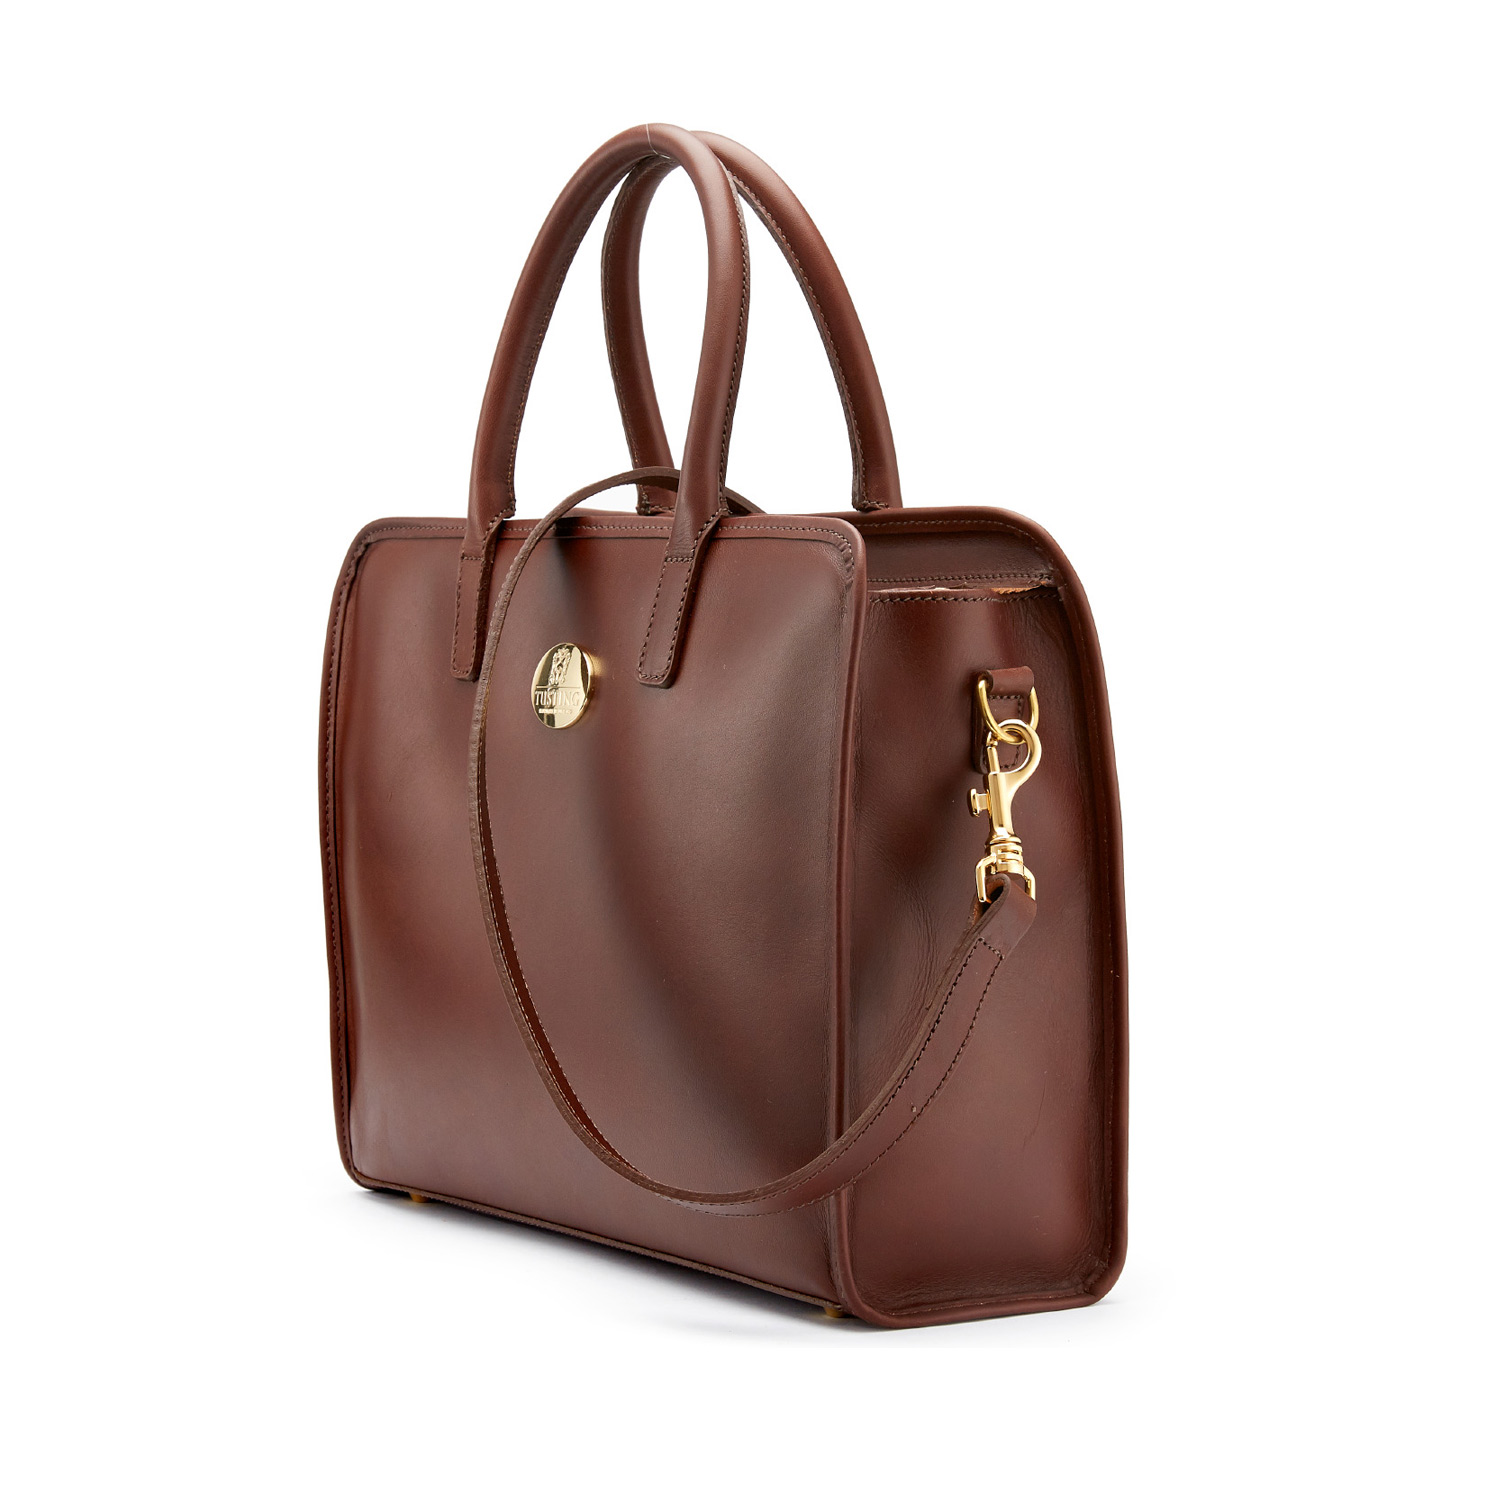 Tusting Catherine Handbag in Chestnut Leather